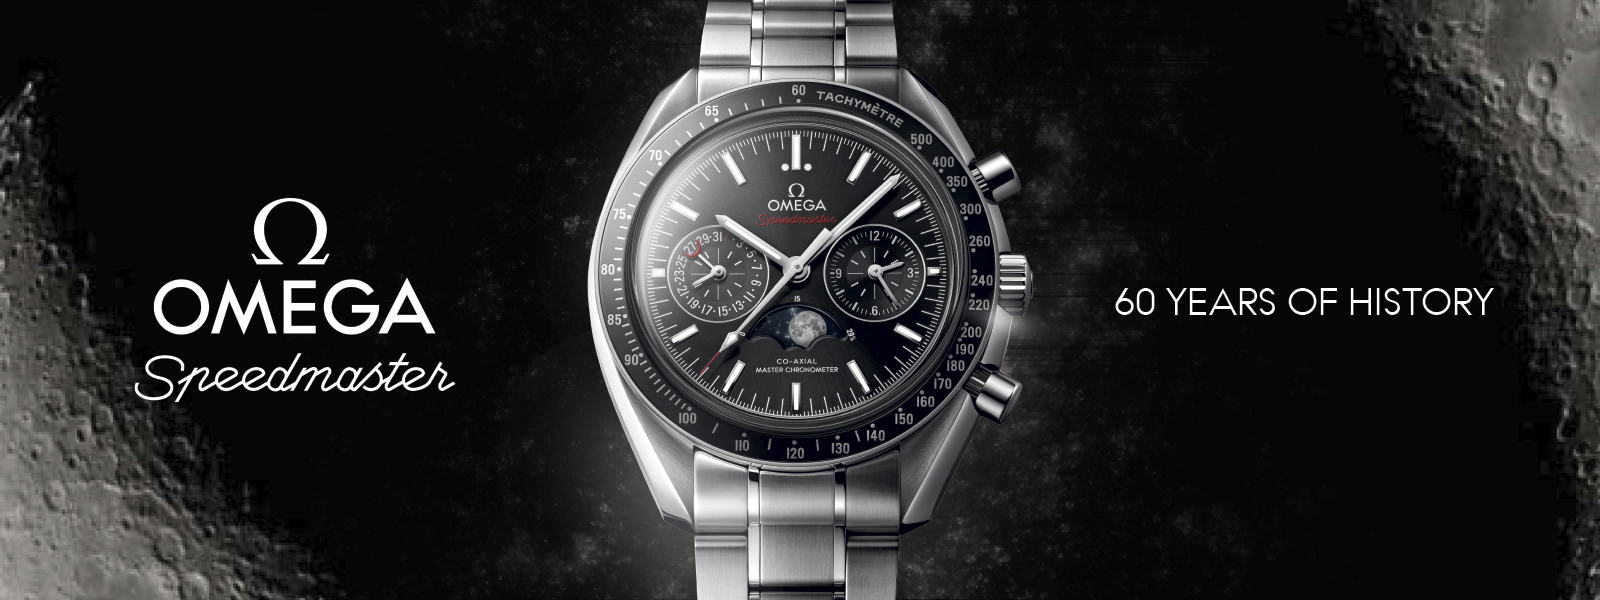 omega upscale buzz the his was shop crop speedmaster timepiece on aldrin astronaut false professional product accompany to moonwatch chronograph scale subsampling first watches square